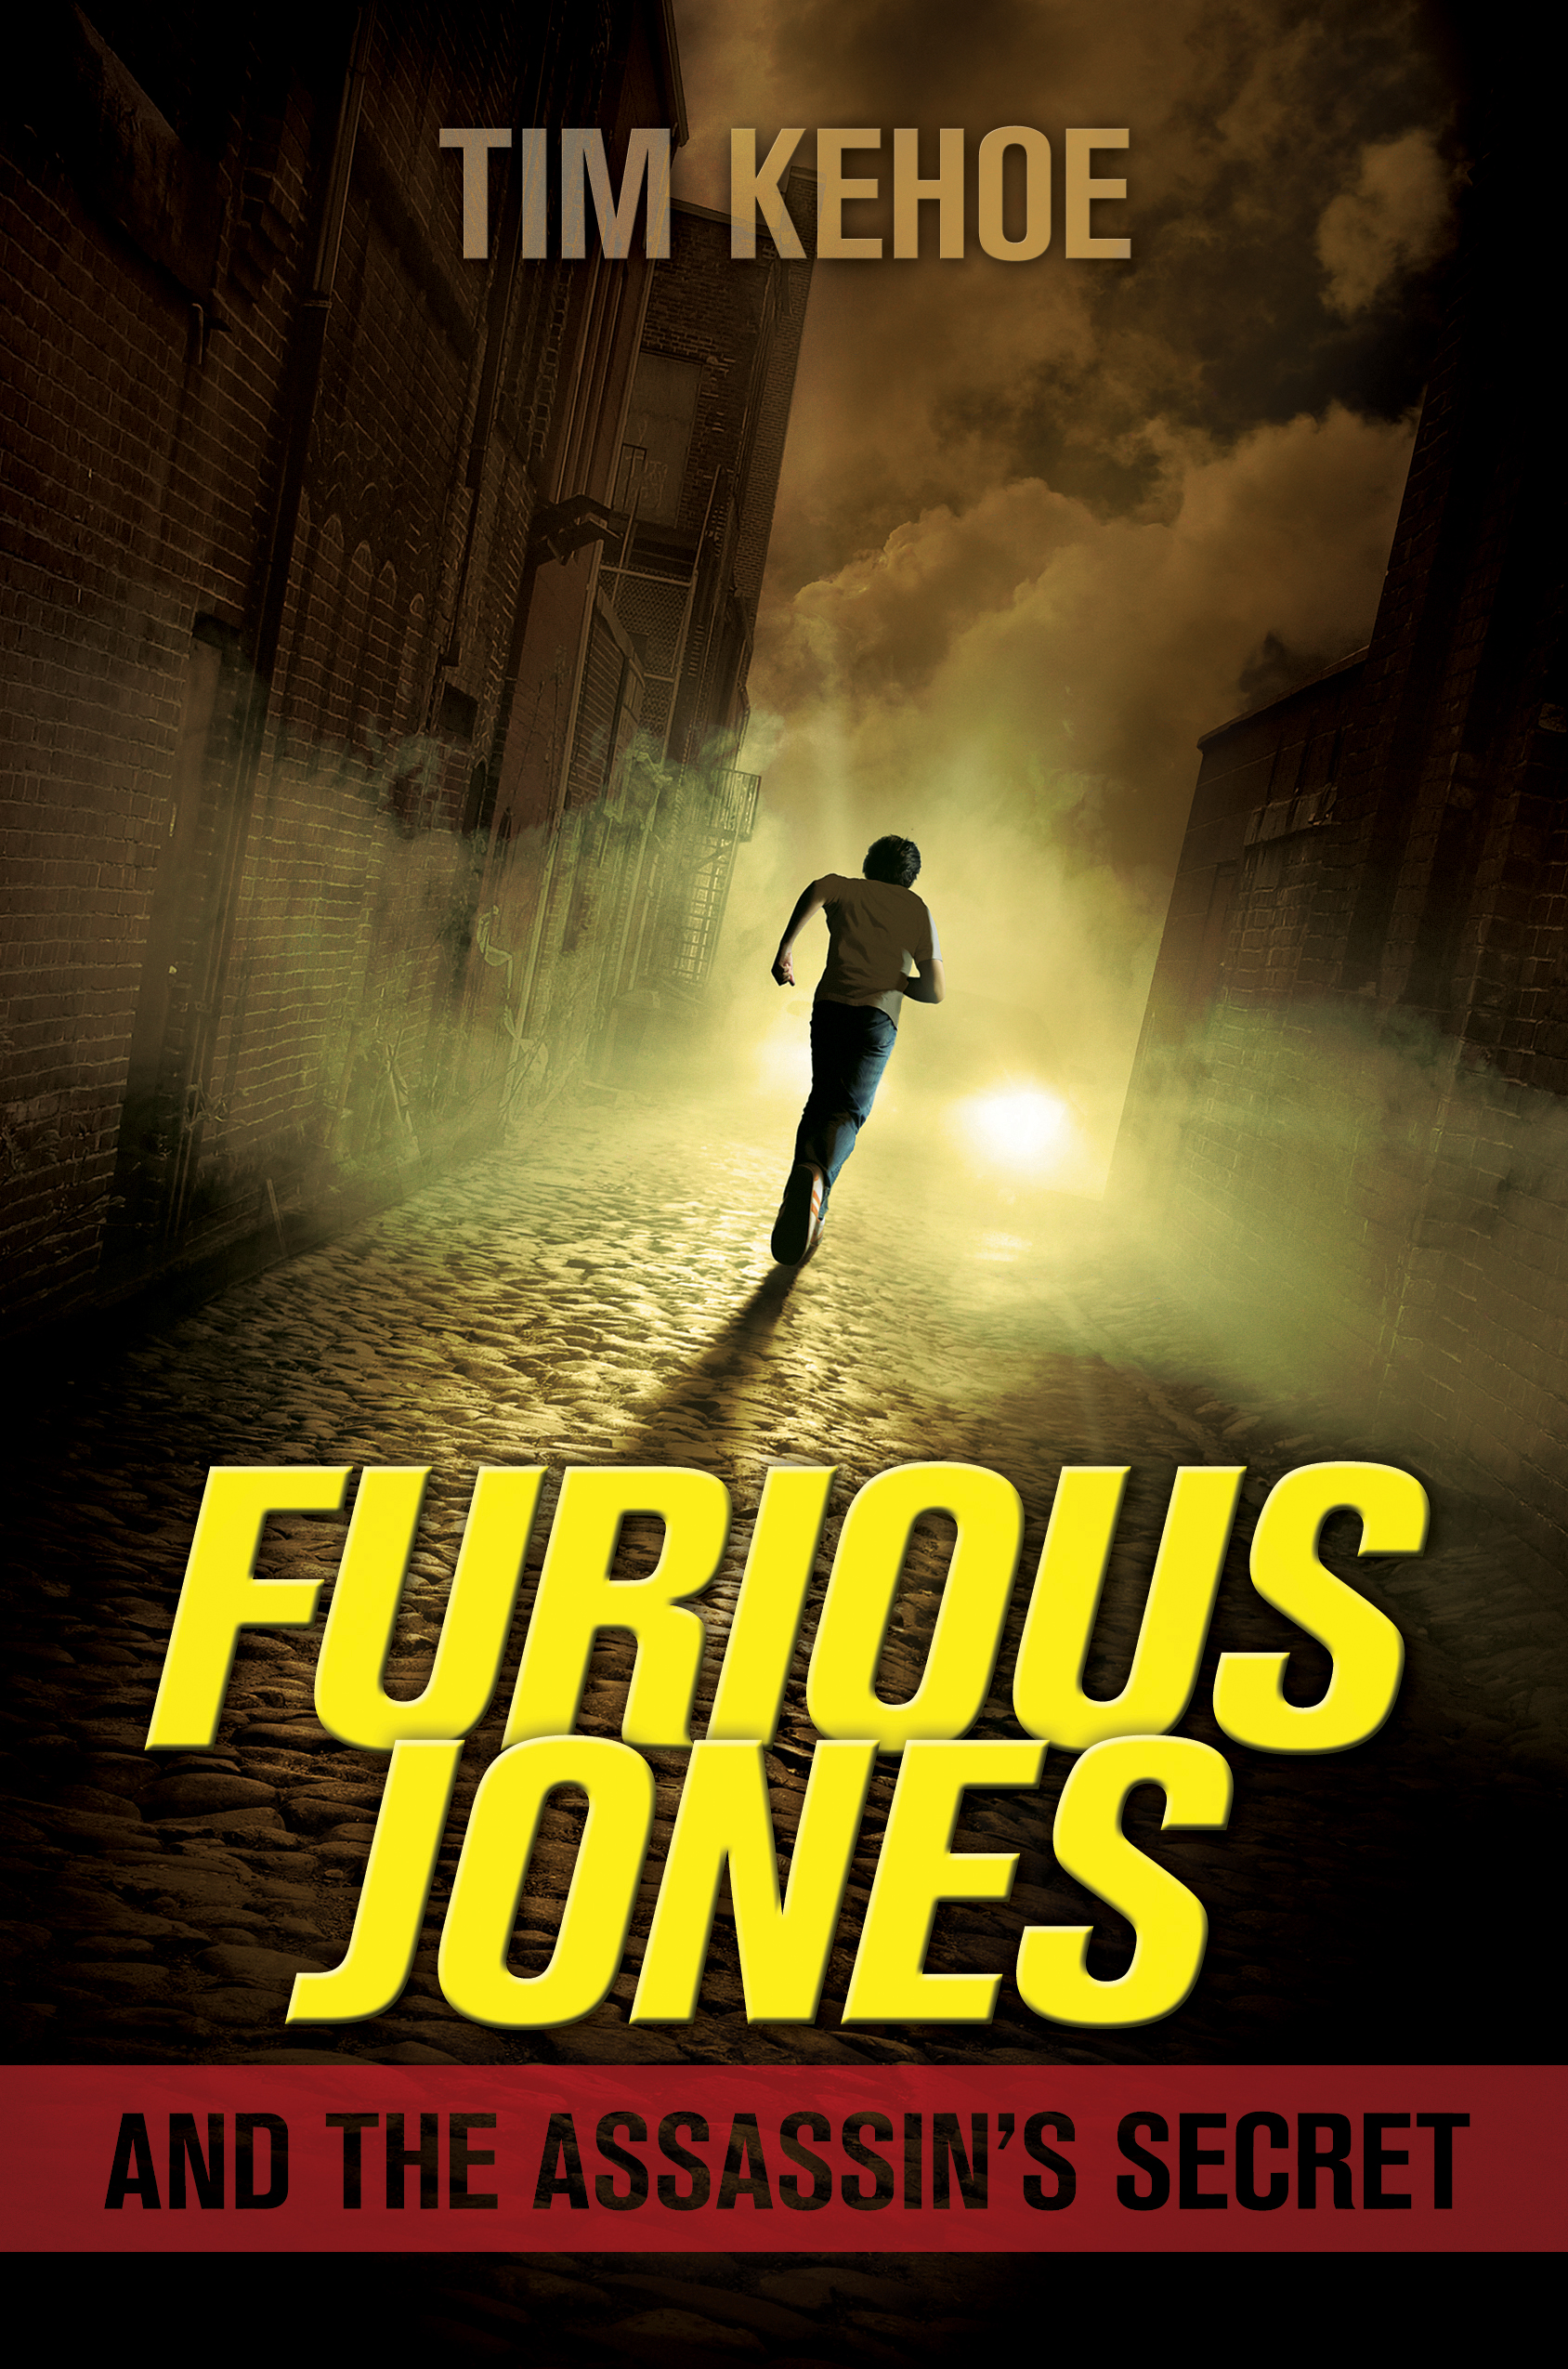 Furious jones and the assassins secret 9781442473379 hr